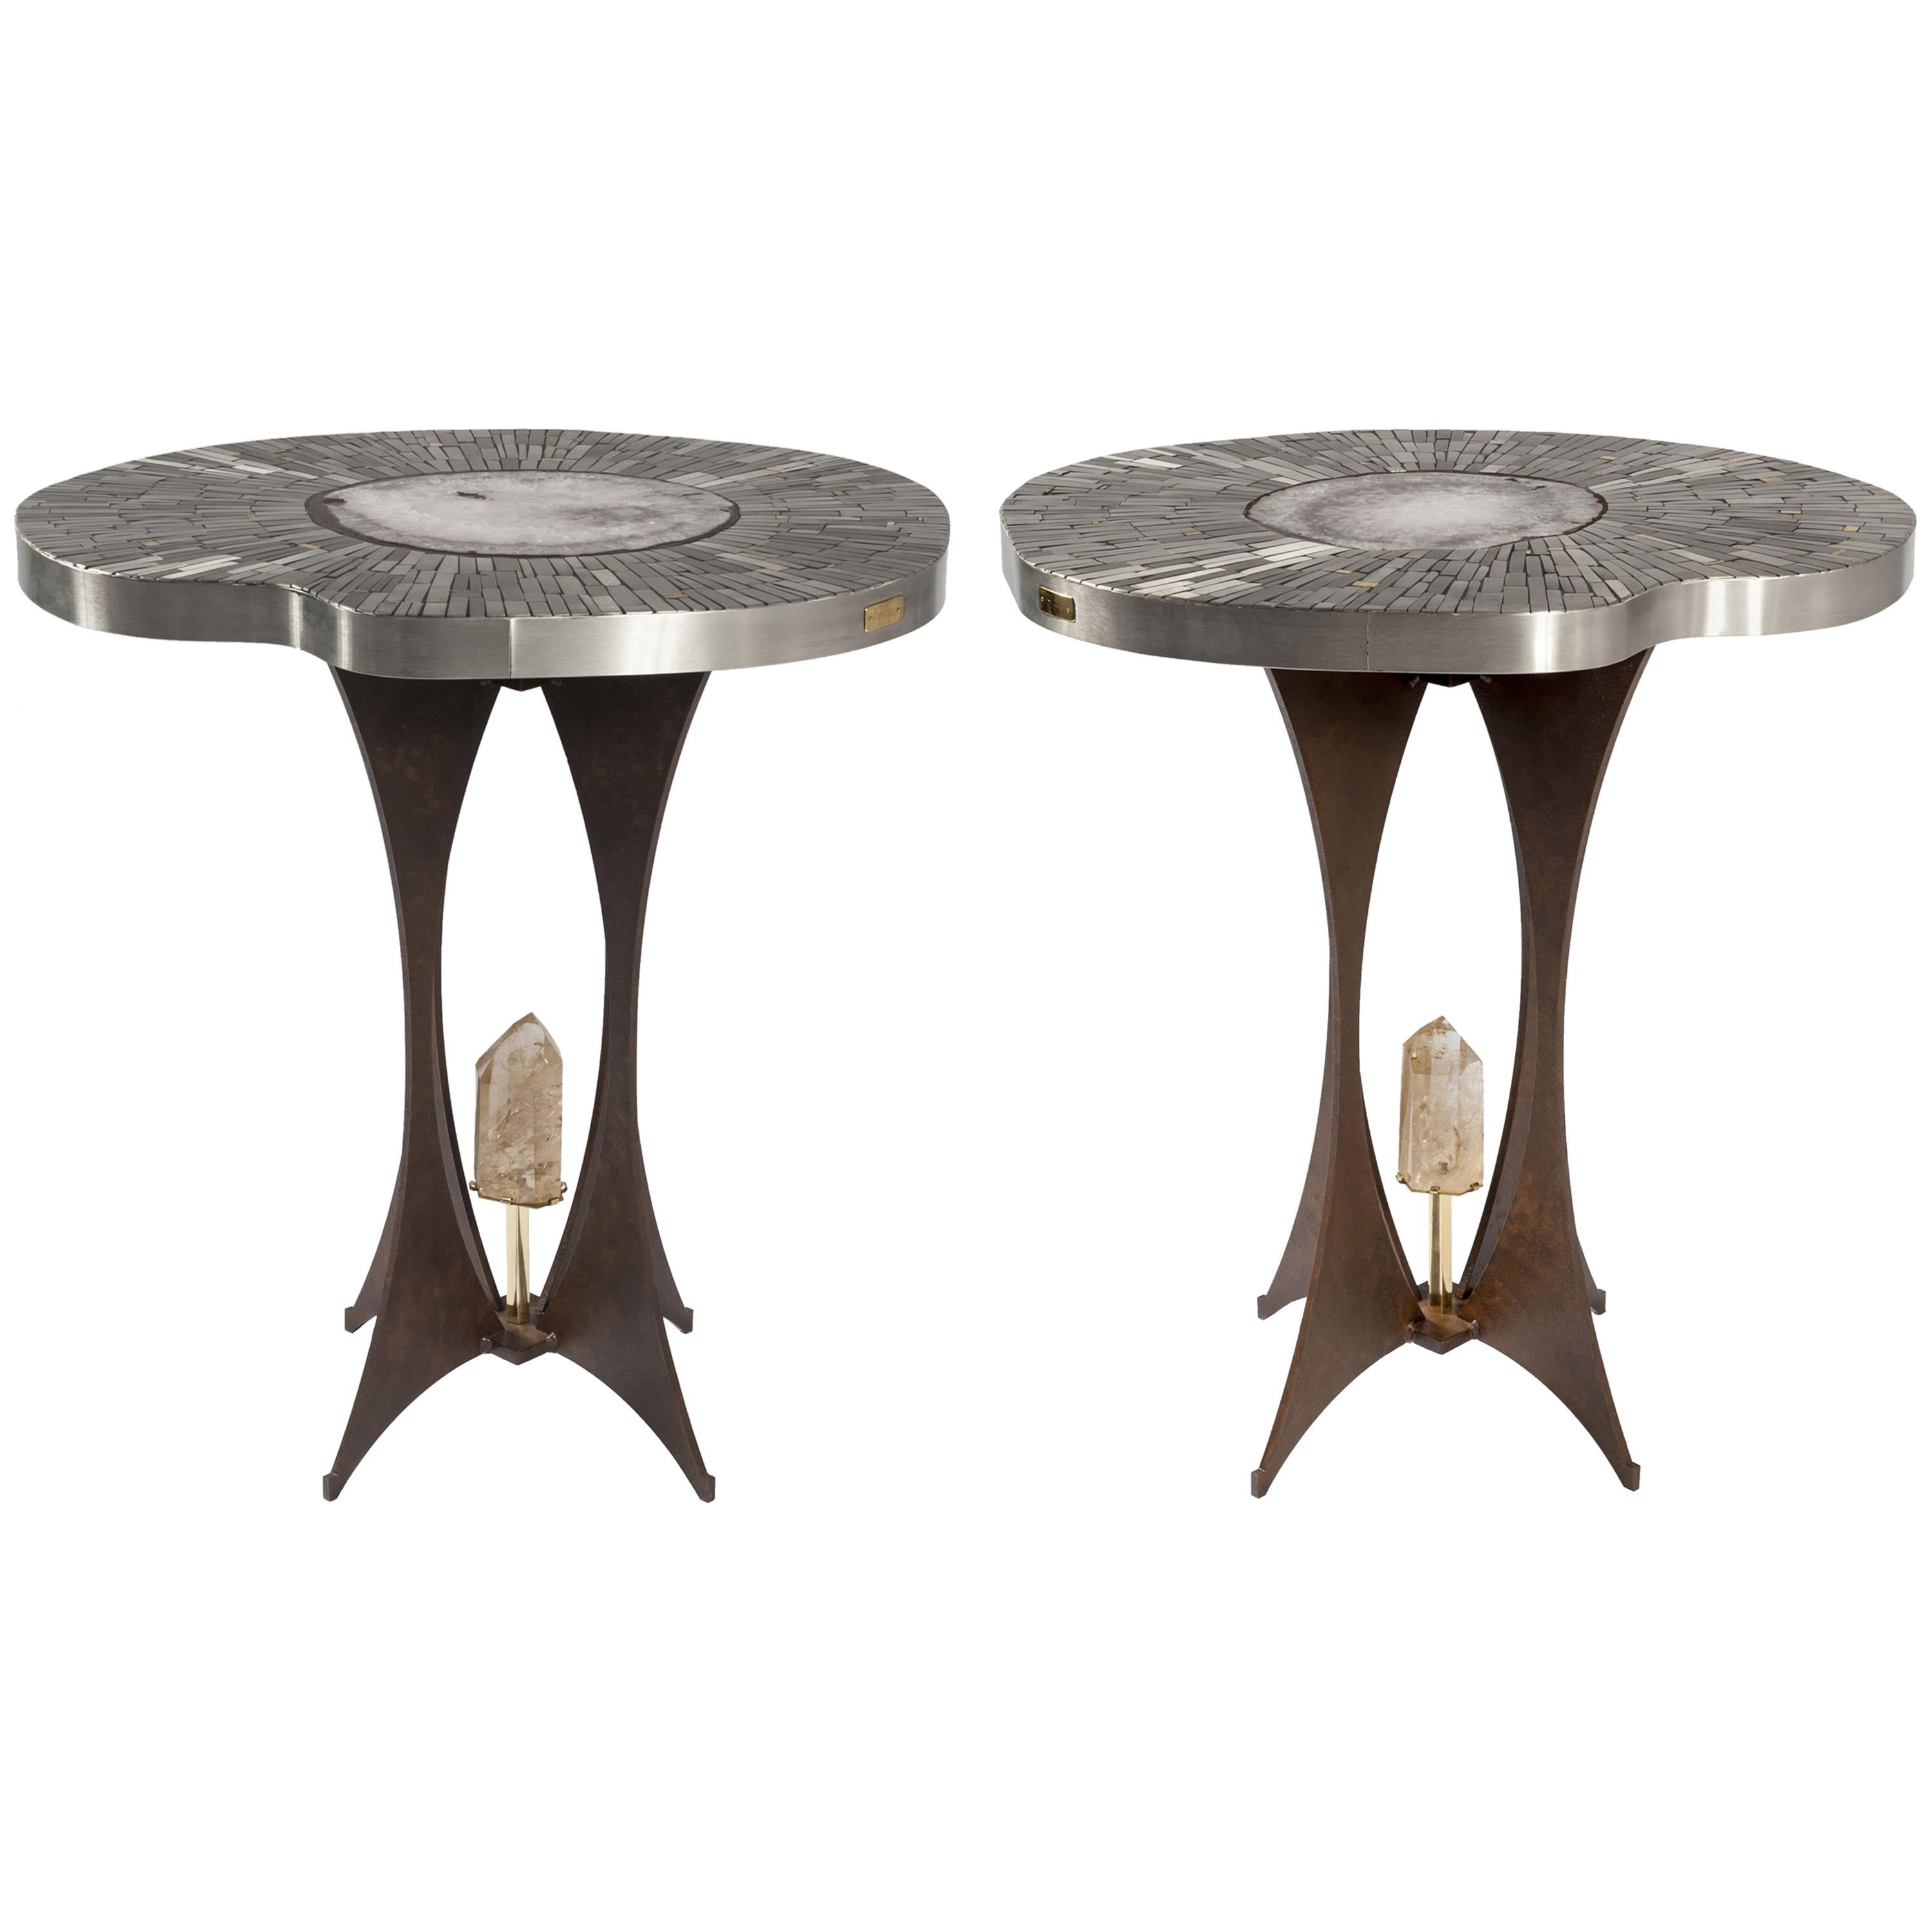 Pair of Pedestal Tables in Mosaic and Gemstone by Stan Usel